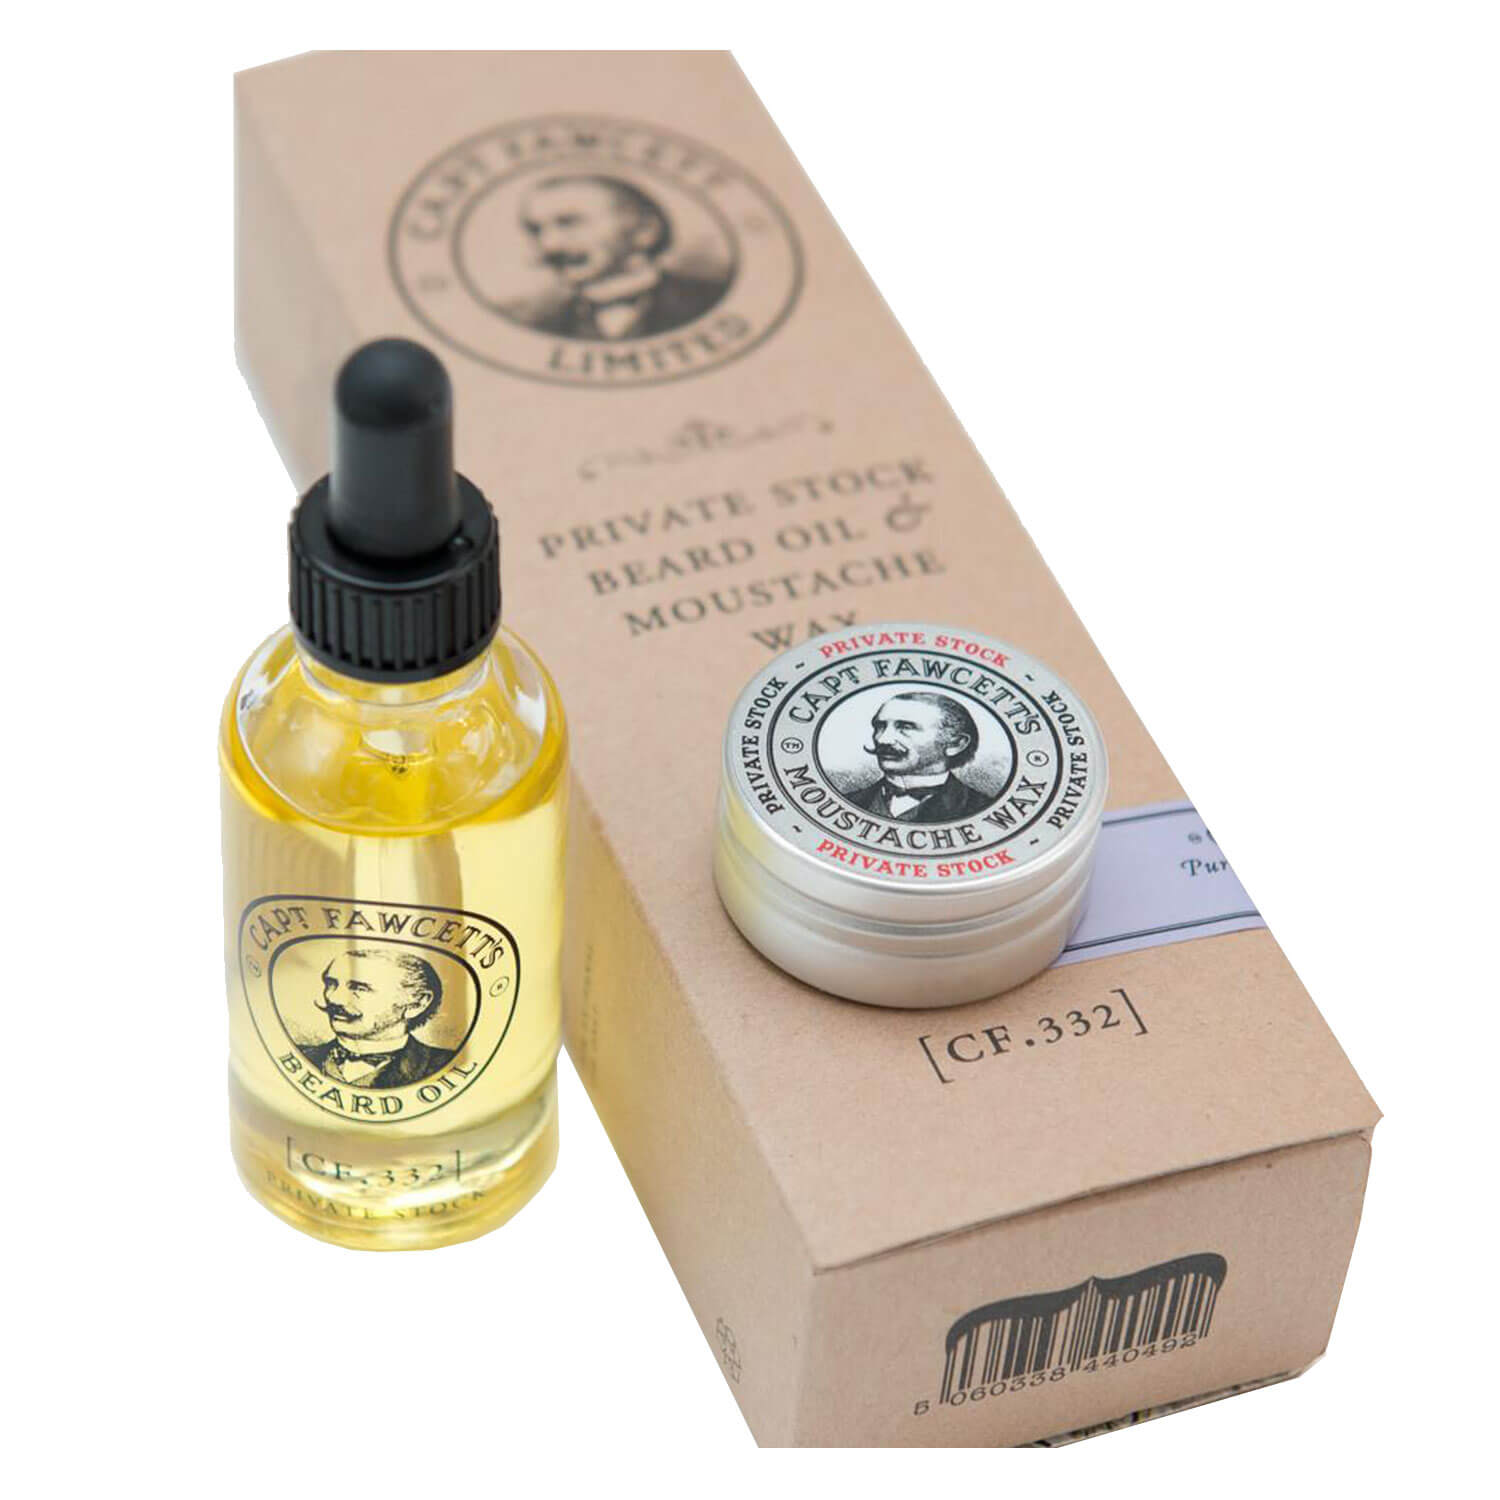 Capt. Fawcett Care - Private Stock Beard Oil & Moustache Wax Set